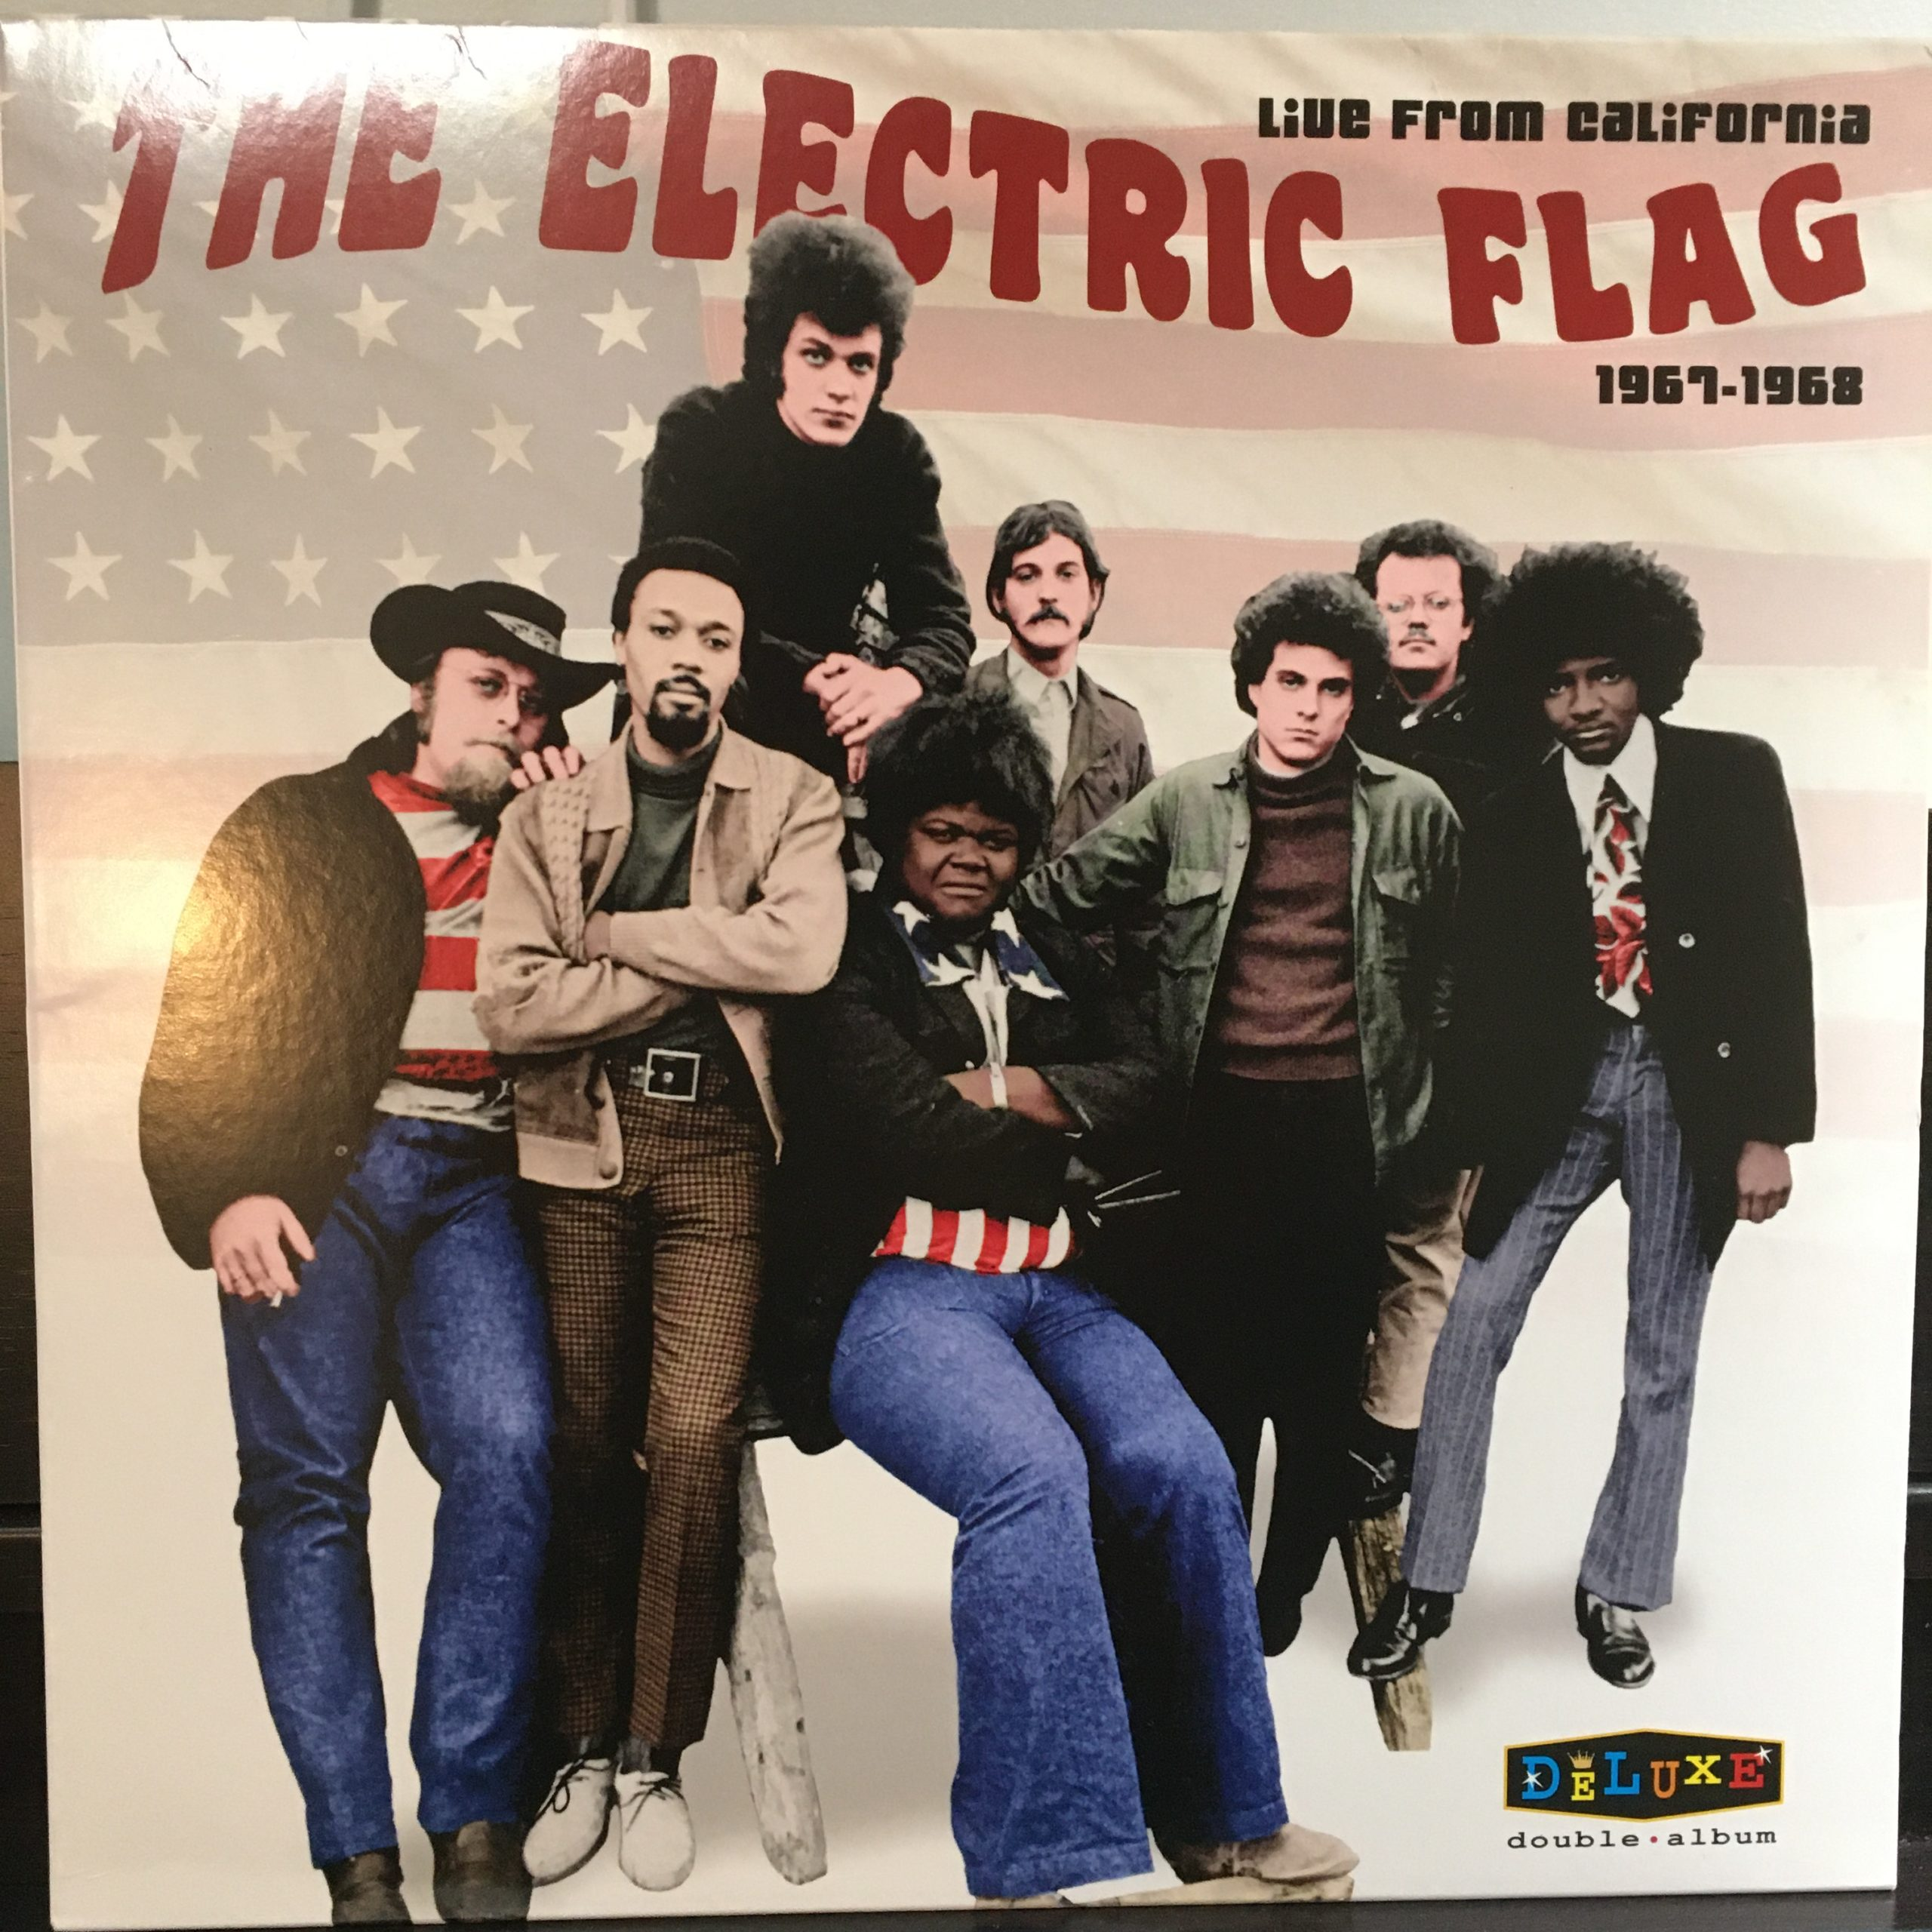 The Electric Flag Live from California